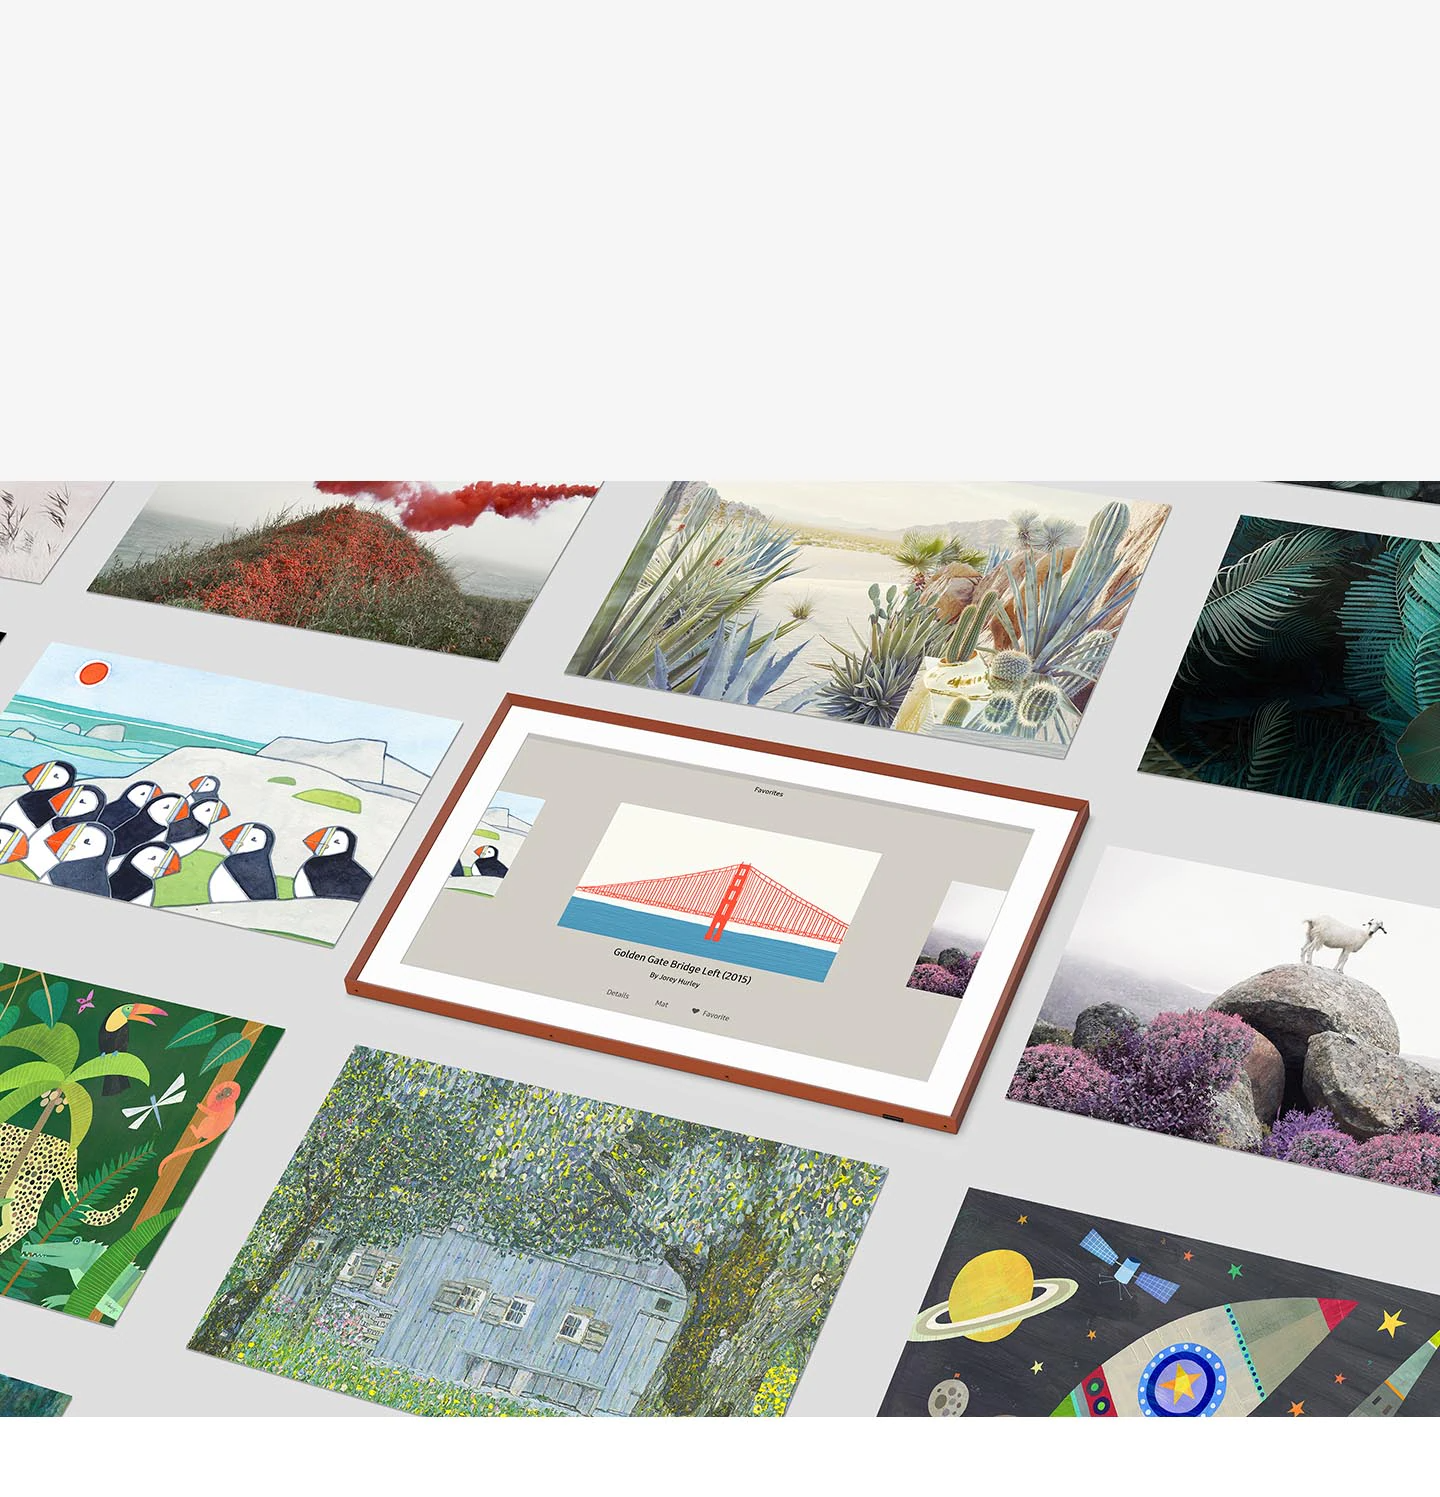 Art Mode user interface image shows bridge and water picture being selected among various other artwork choices.